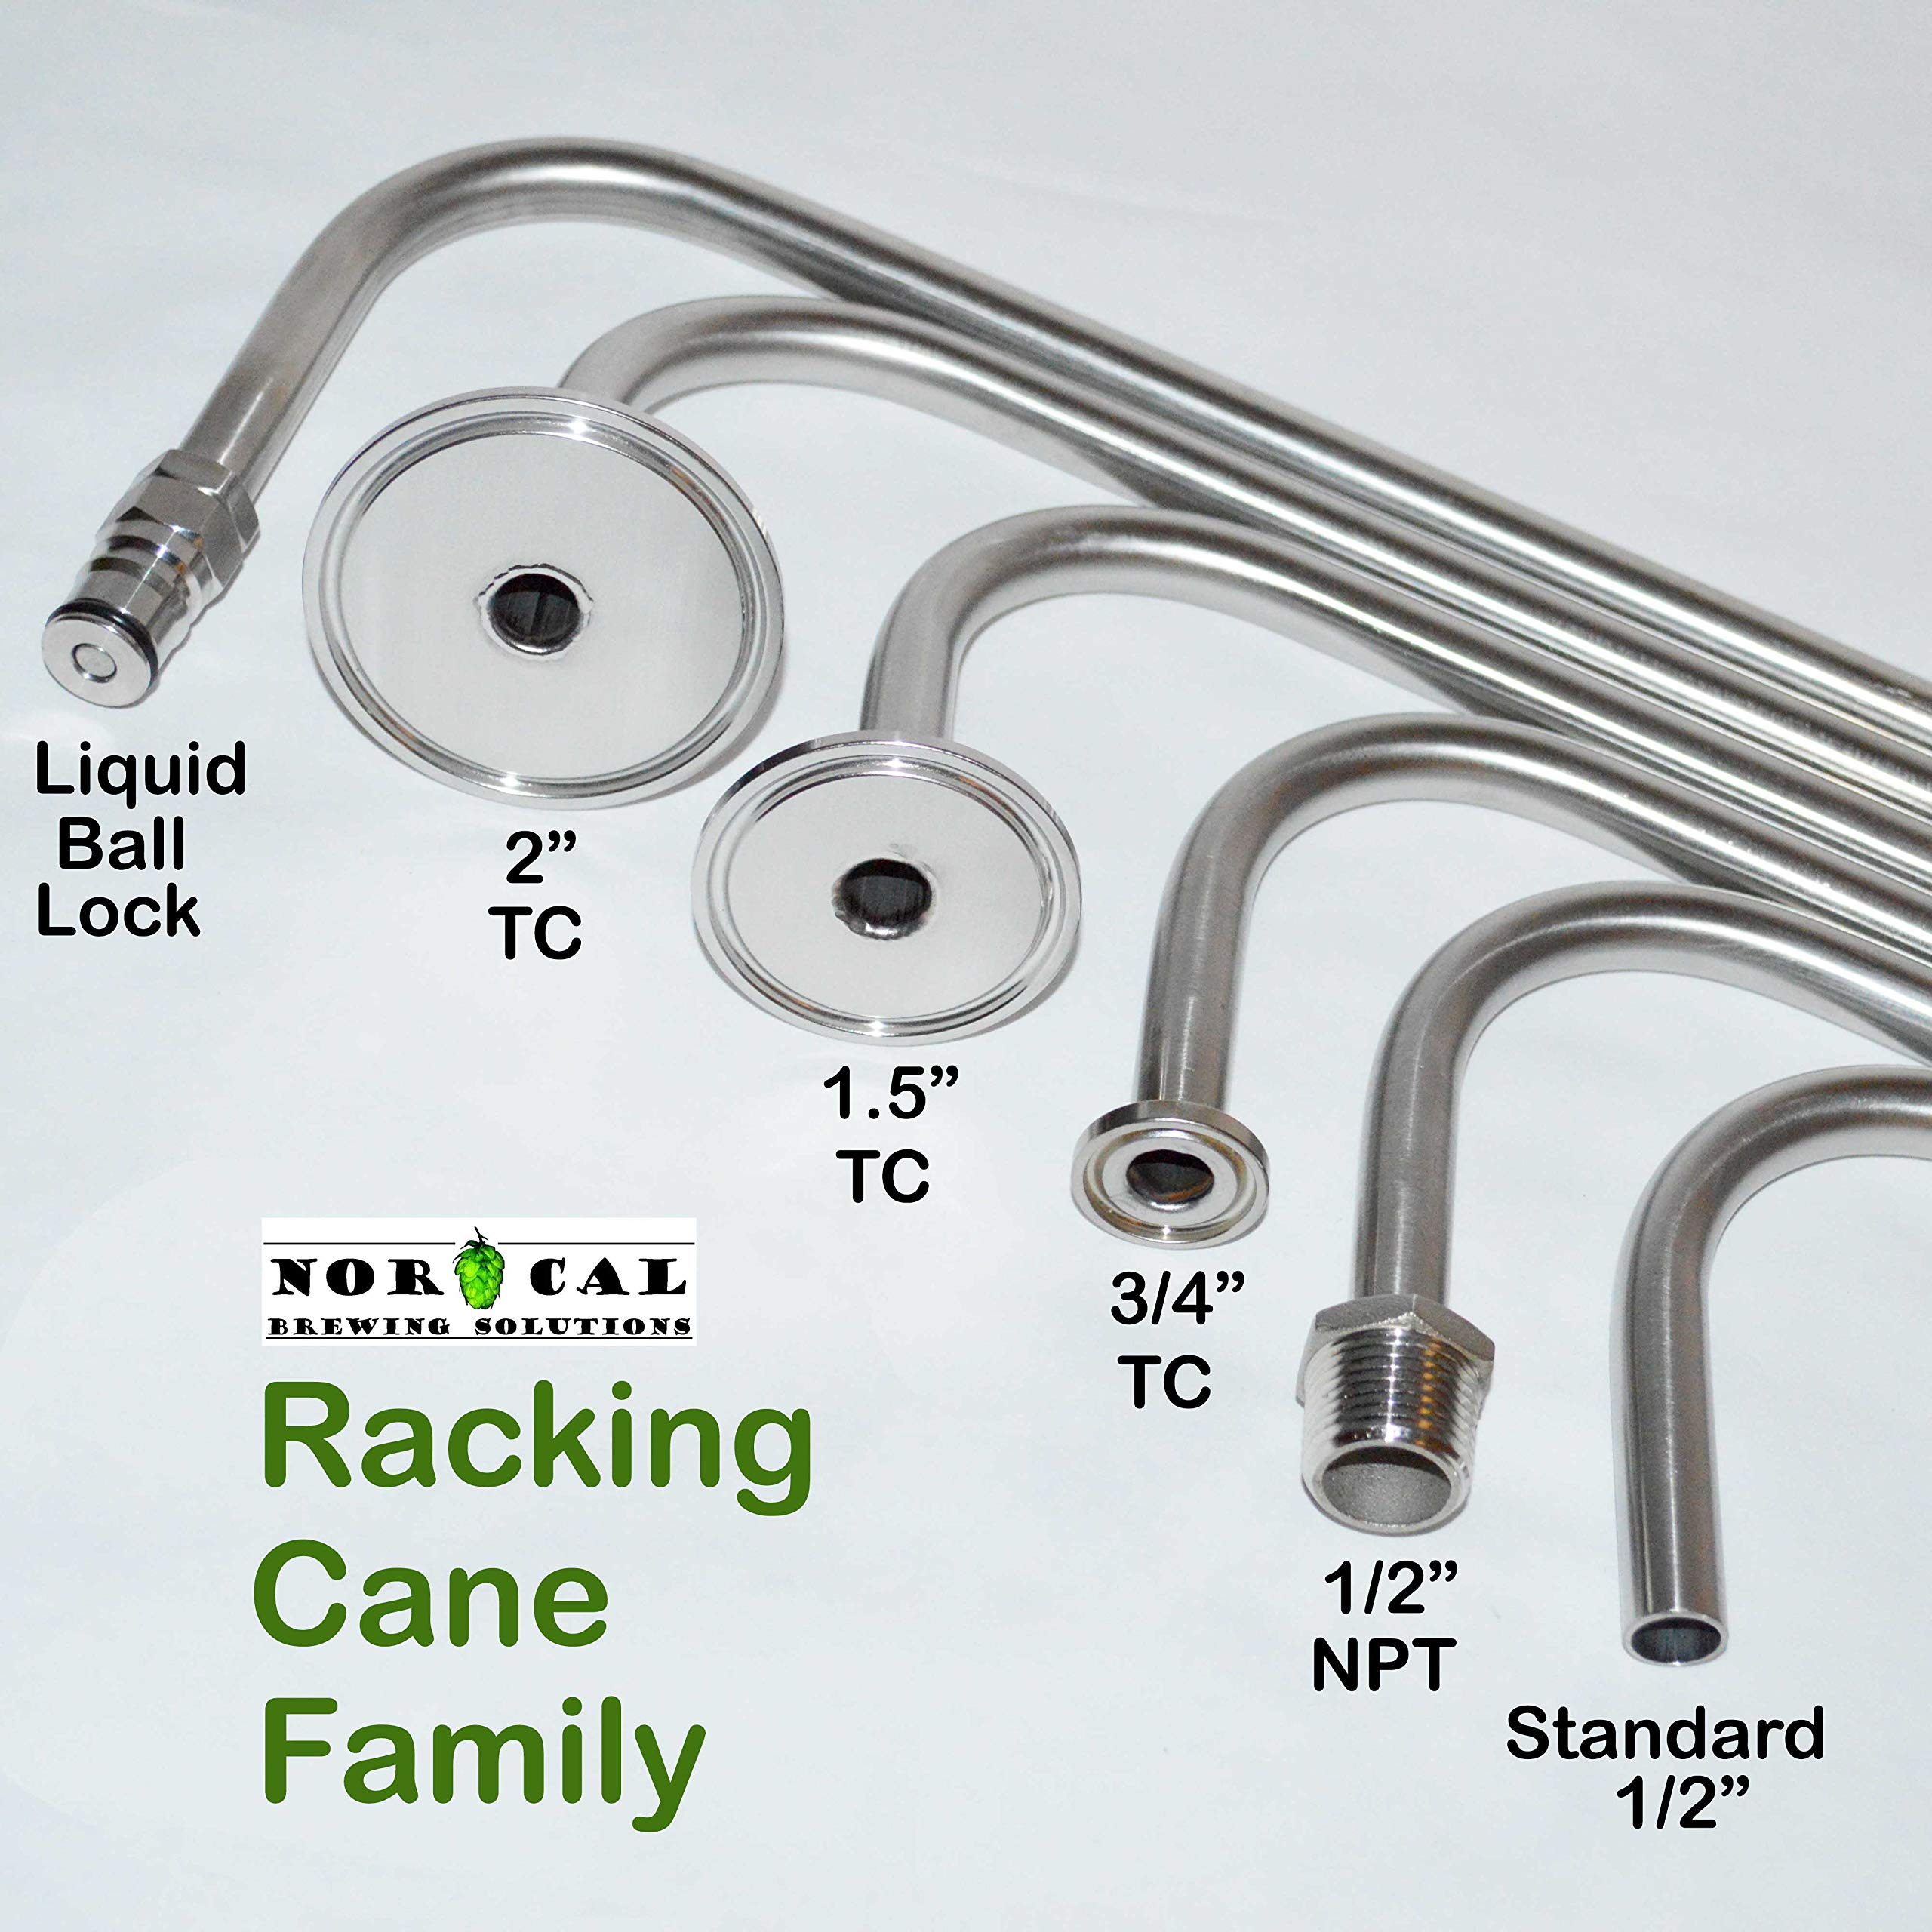 Jaybird 304 Stainless Steel 34'' Long x 1/2'' Diameter Racking Cane for Barrels by NorCal Brewing Solutions (Image #3)